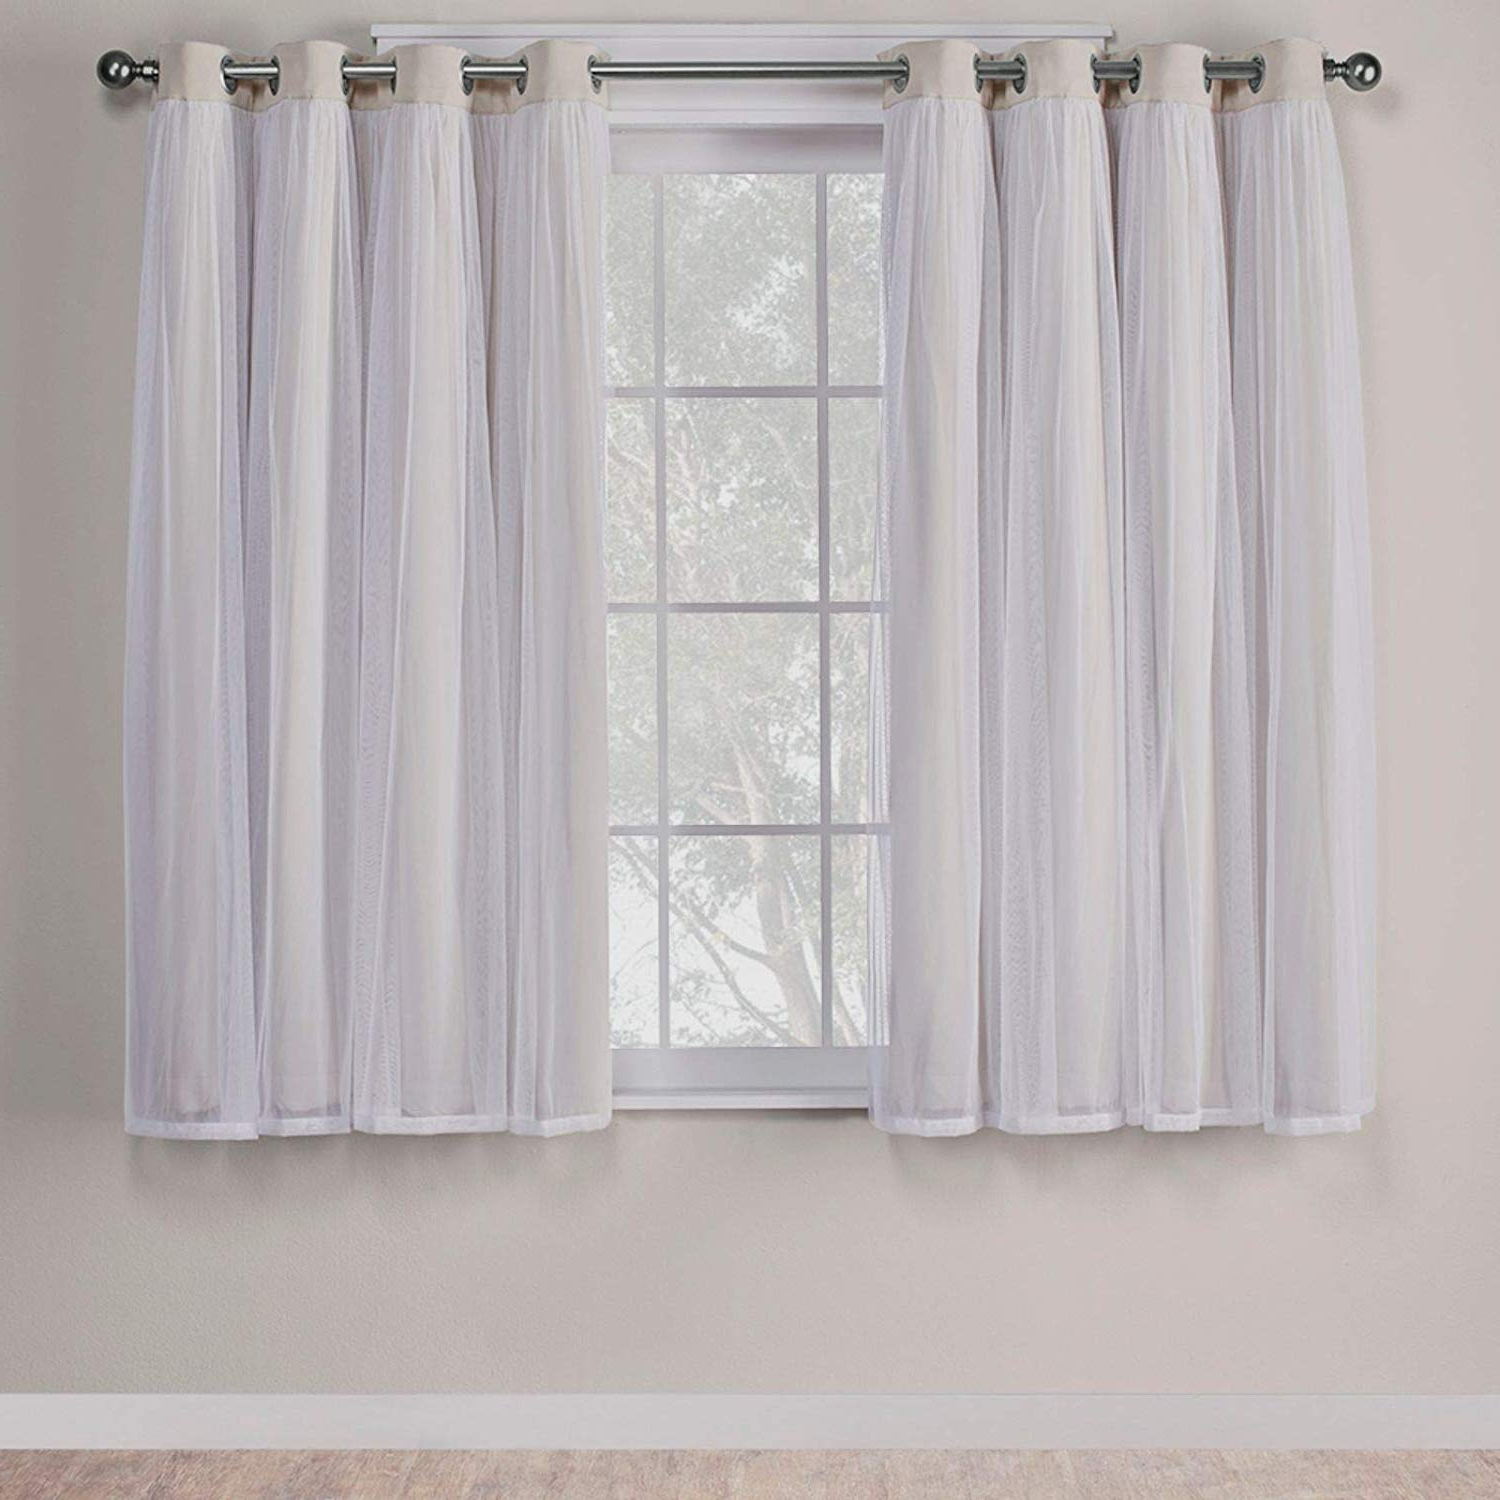 Preferred Solid Grommet Top Curtain Panel Pairs For Exclusive Home Curtains Catarina Layered Solid Blackout And Sheer Window Curtain Panel Pair With Grommet Top, 52x63, Sand, 2 Piece (View 10 of 20)